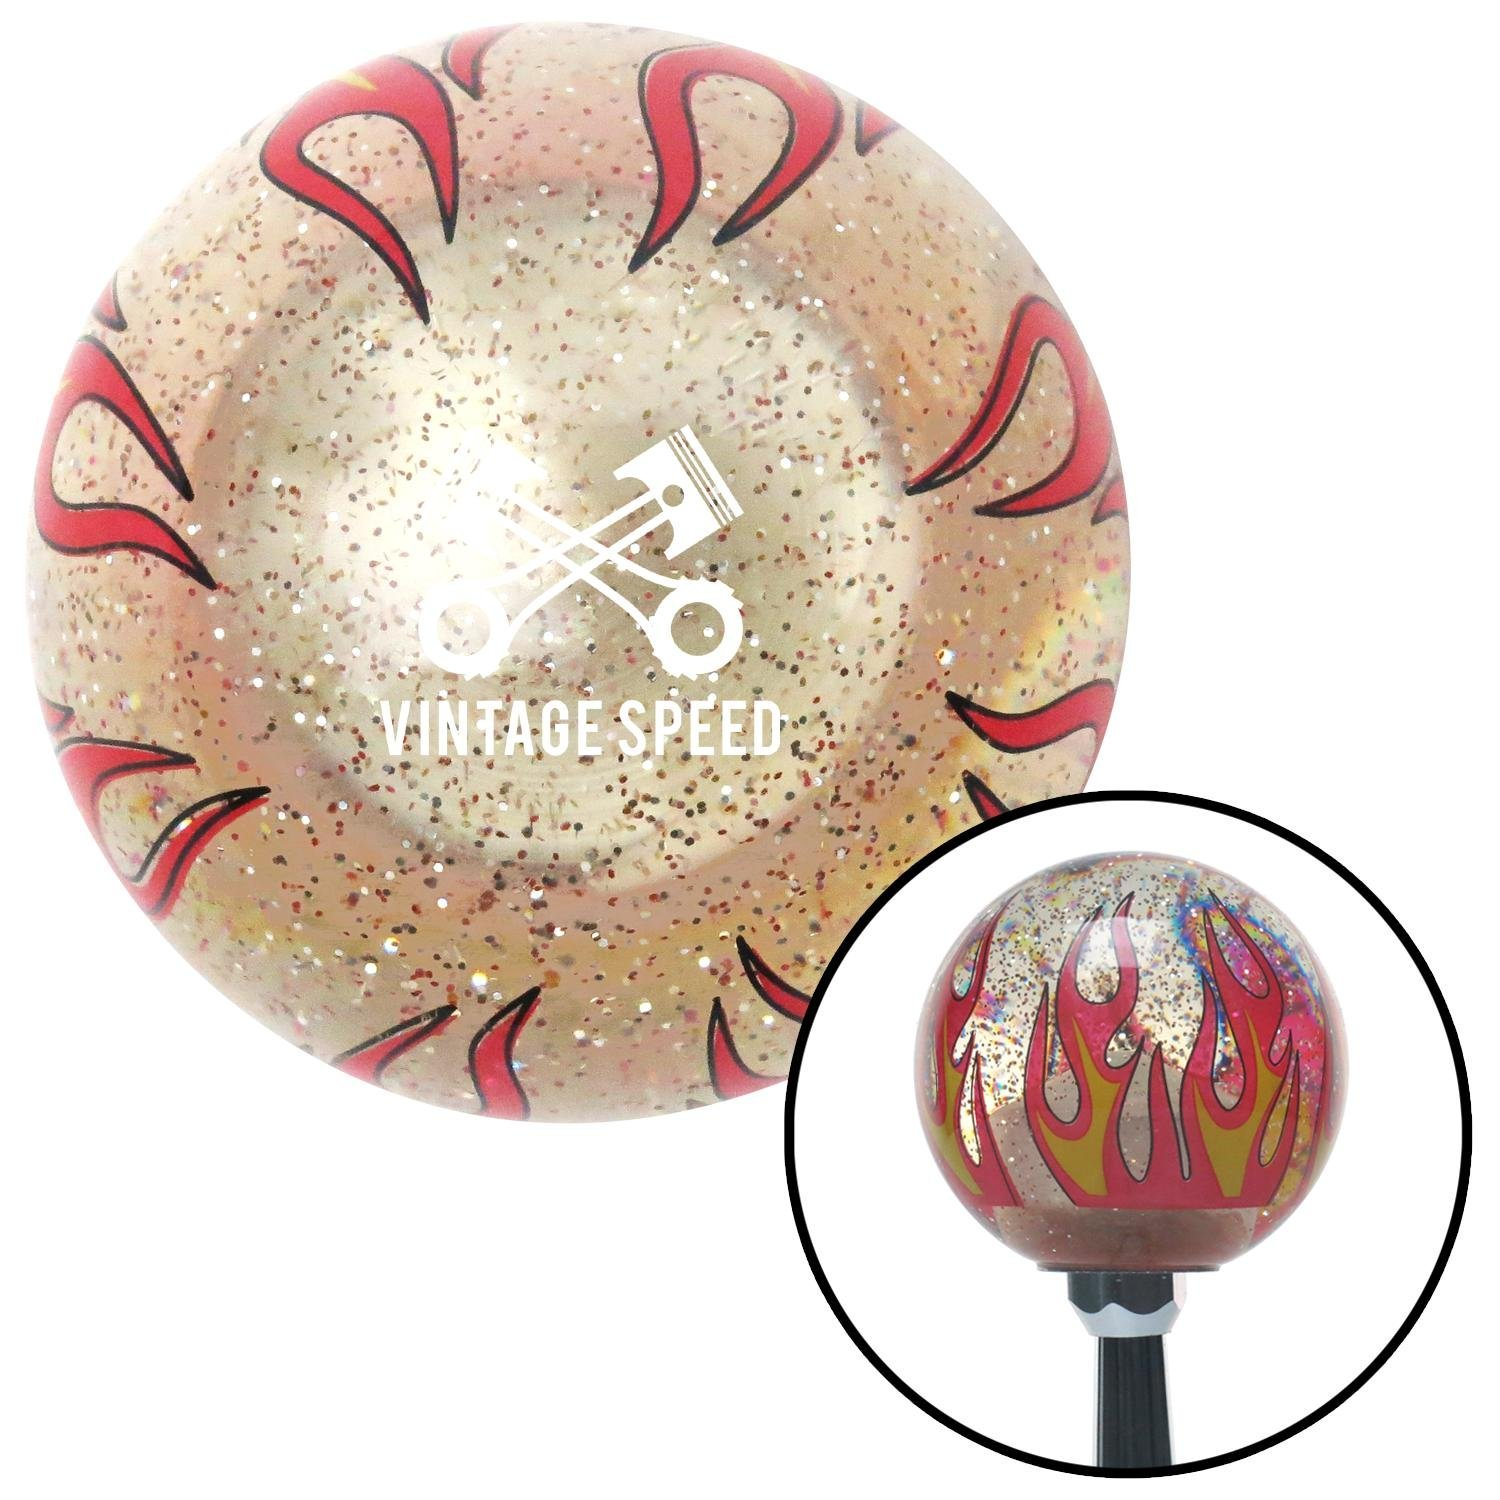 American Shifter 296371 Shift Knob White Vintage Speed Clear Flame Metal Flake